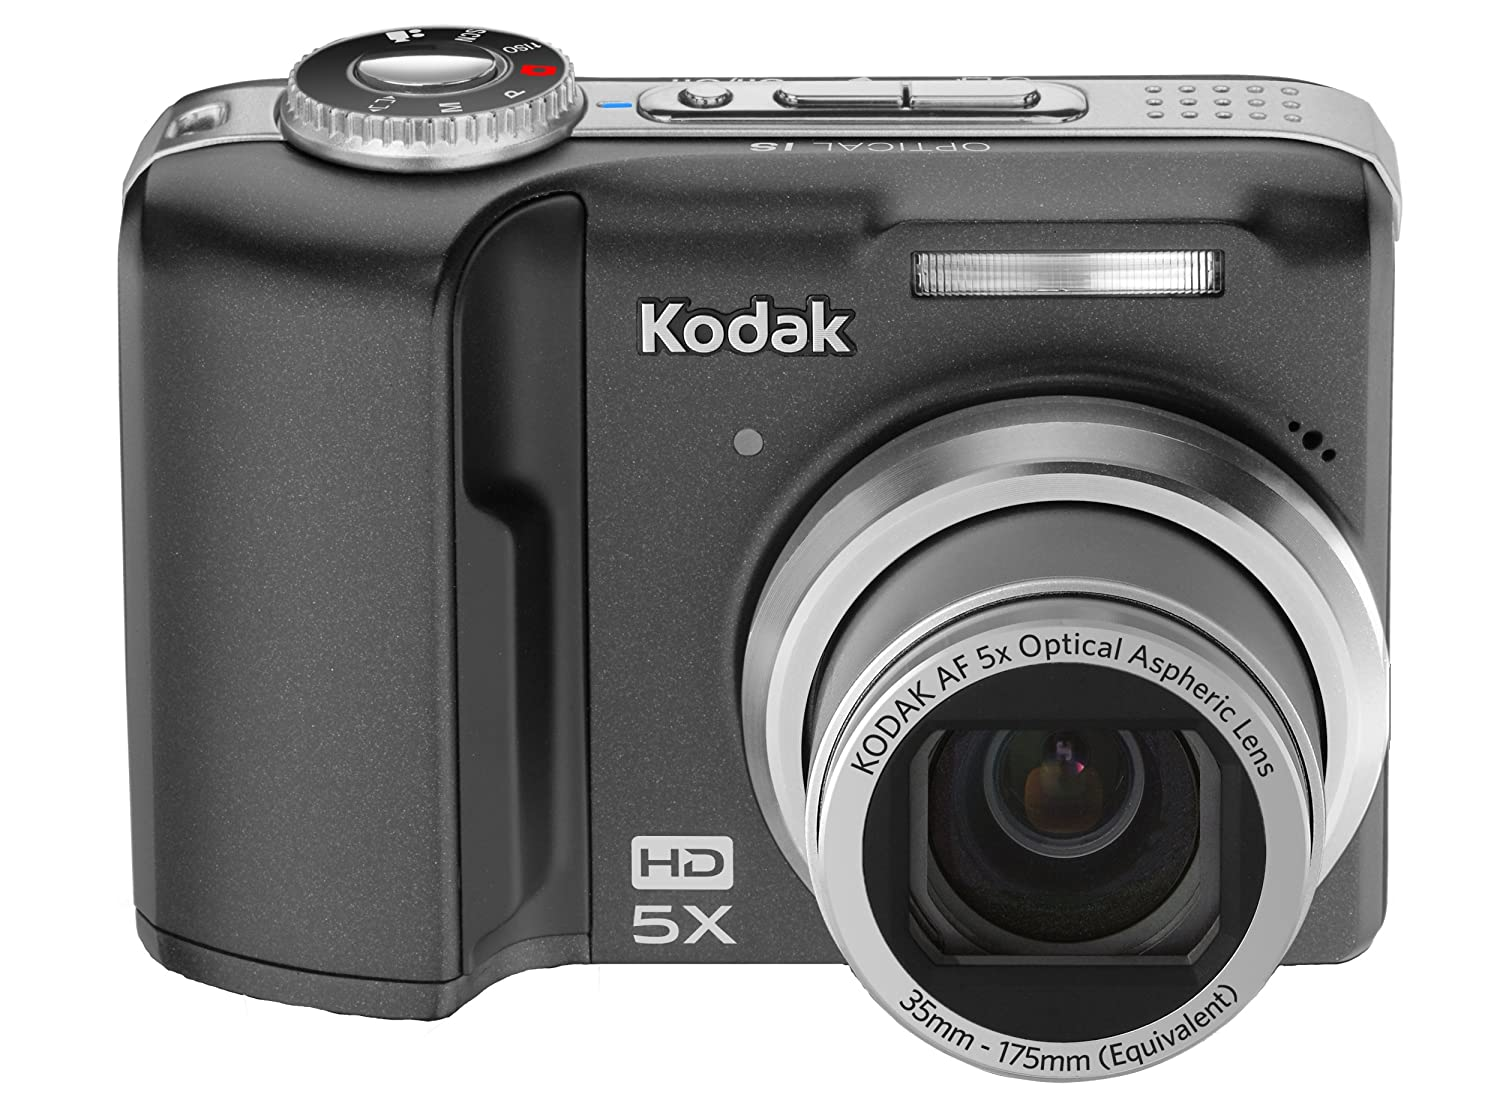 Amazon.com : Kodak Easyshare Z1485 14 MP Digital Camera with 5xOptical  Image Stabilized Zoom and 2.5-Inch LCD (Black) : Point And Shoot Digital  Cameras ...